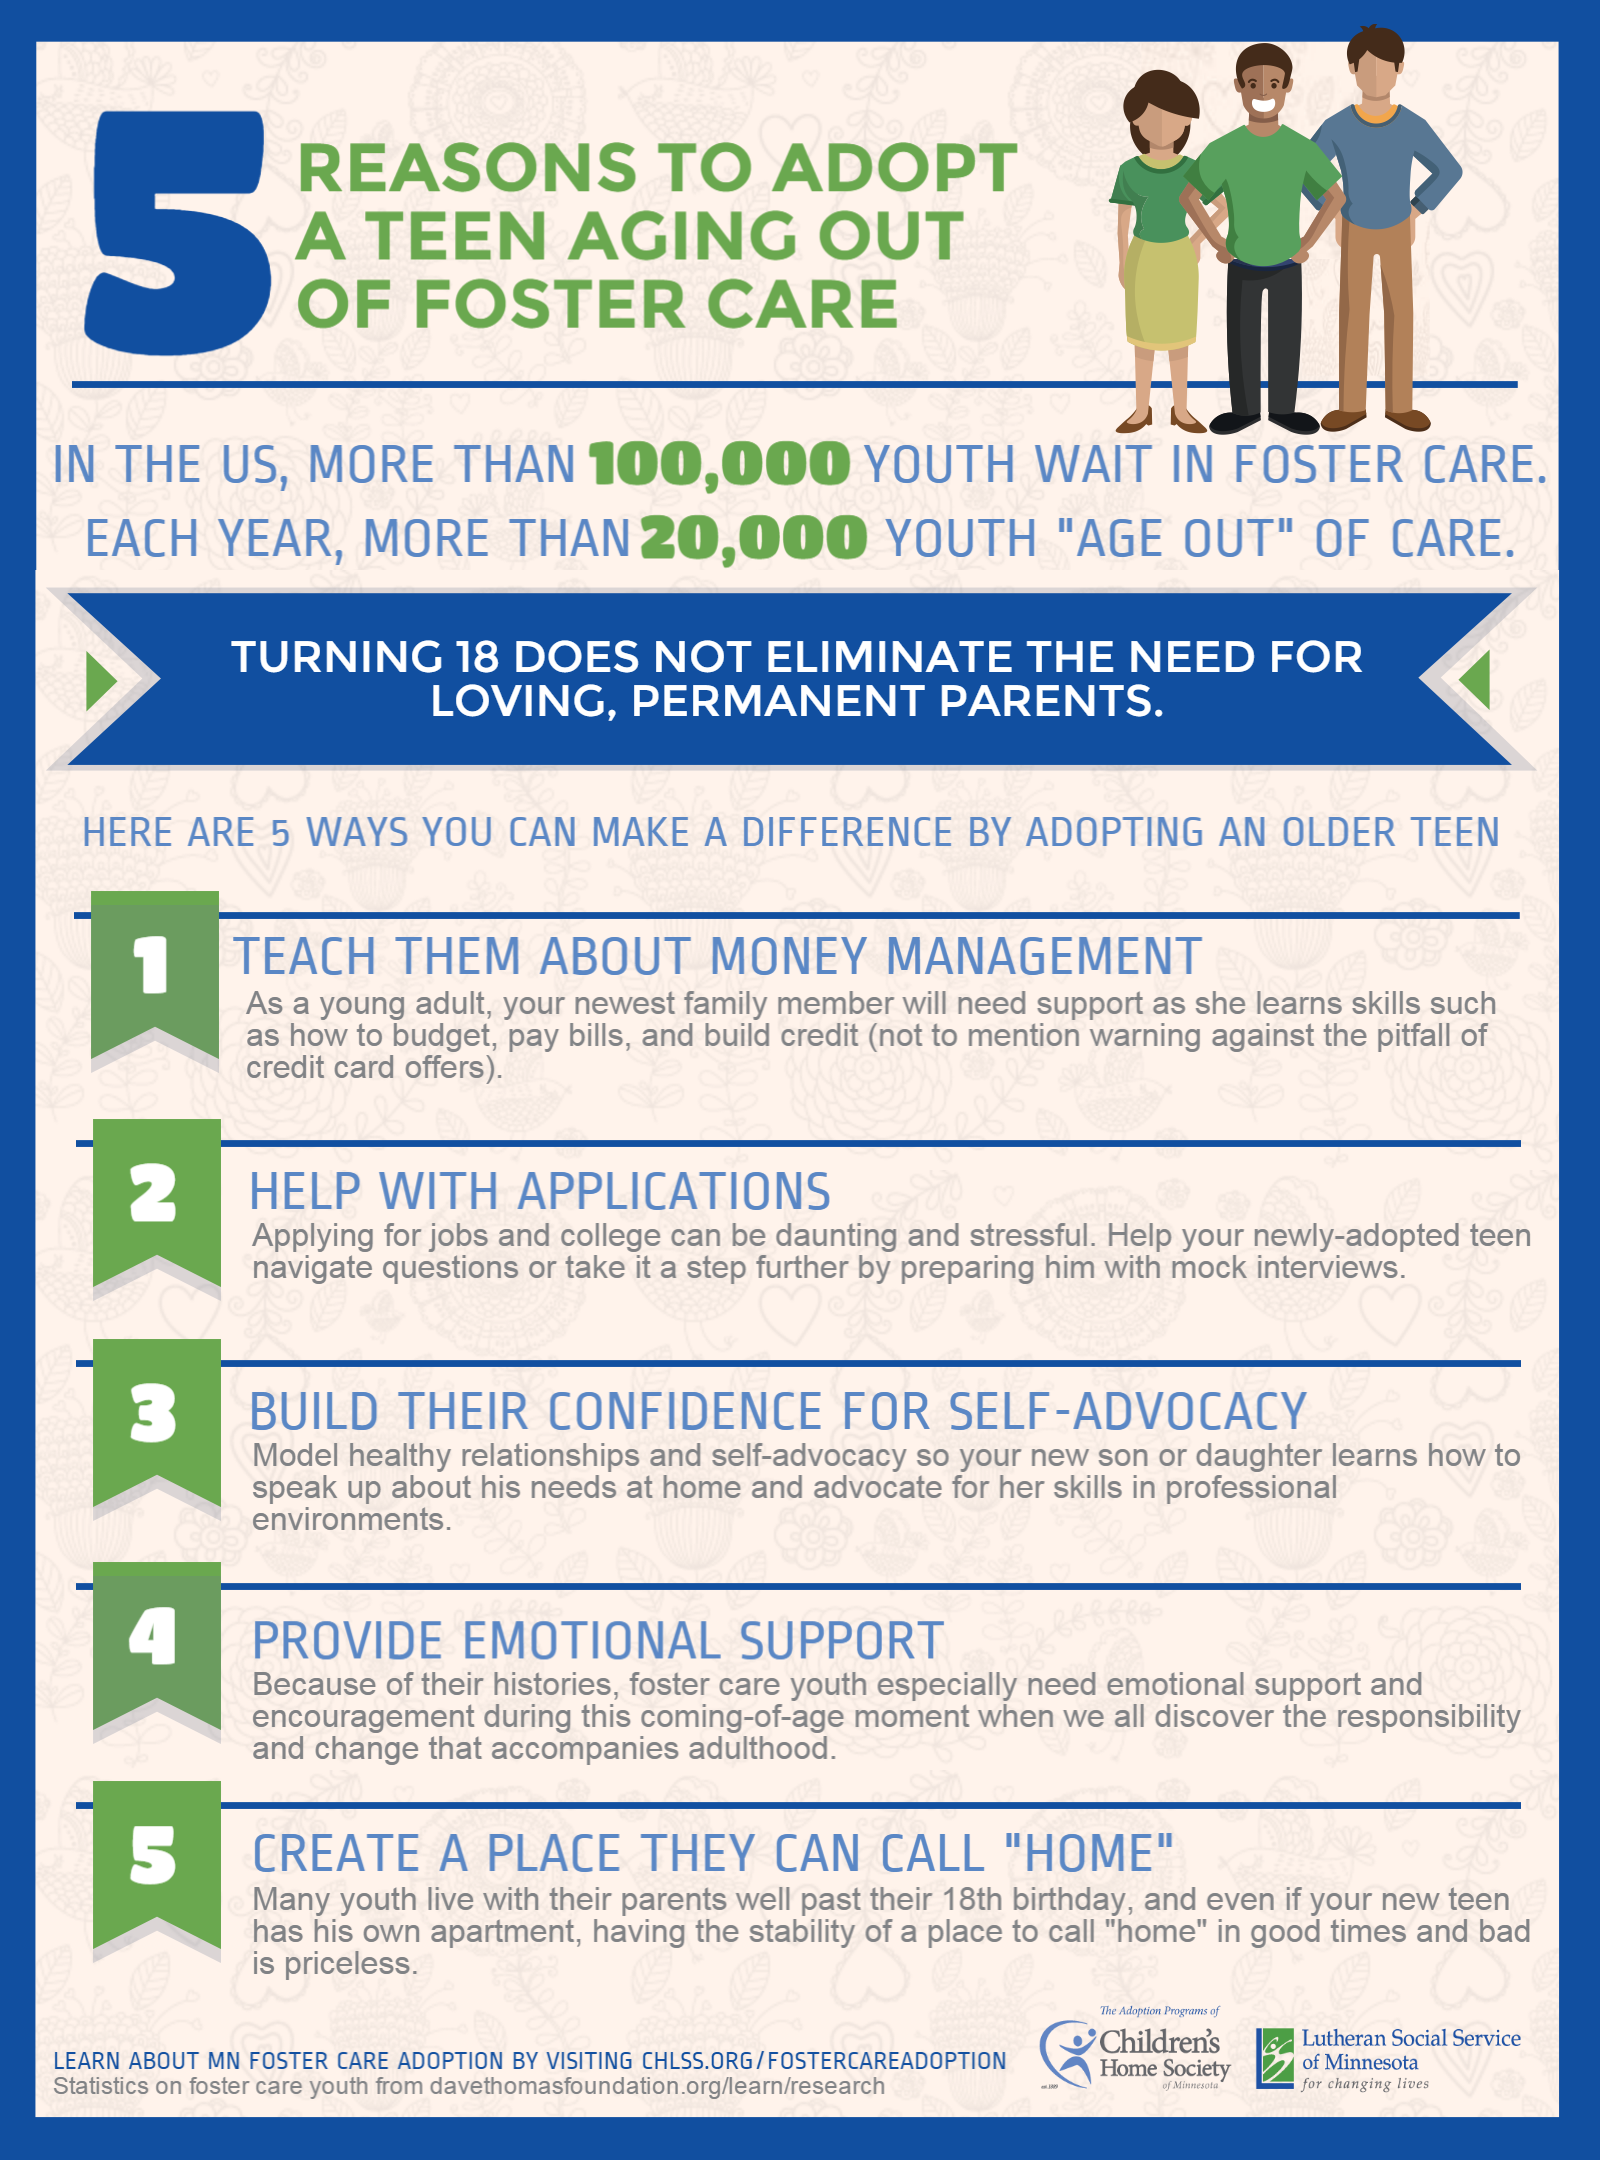 Infographic  5 Reasons To Adopt A Teen Aging Out Of -8841